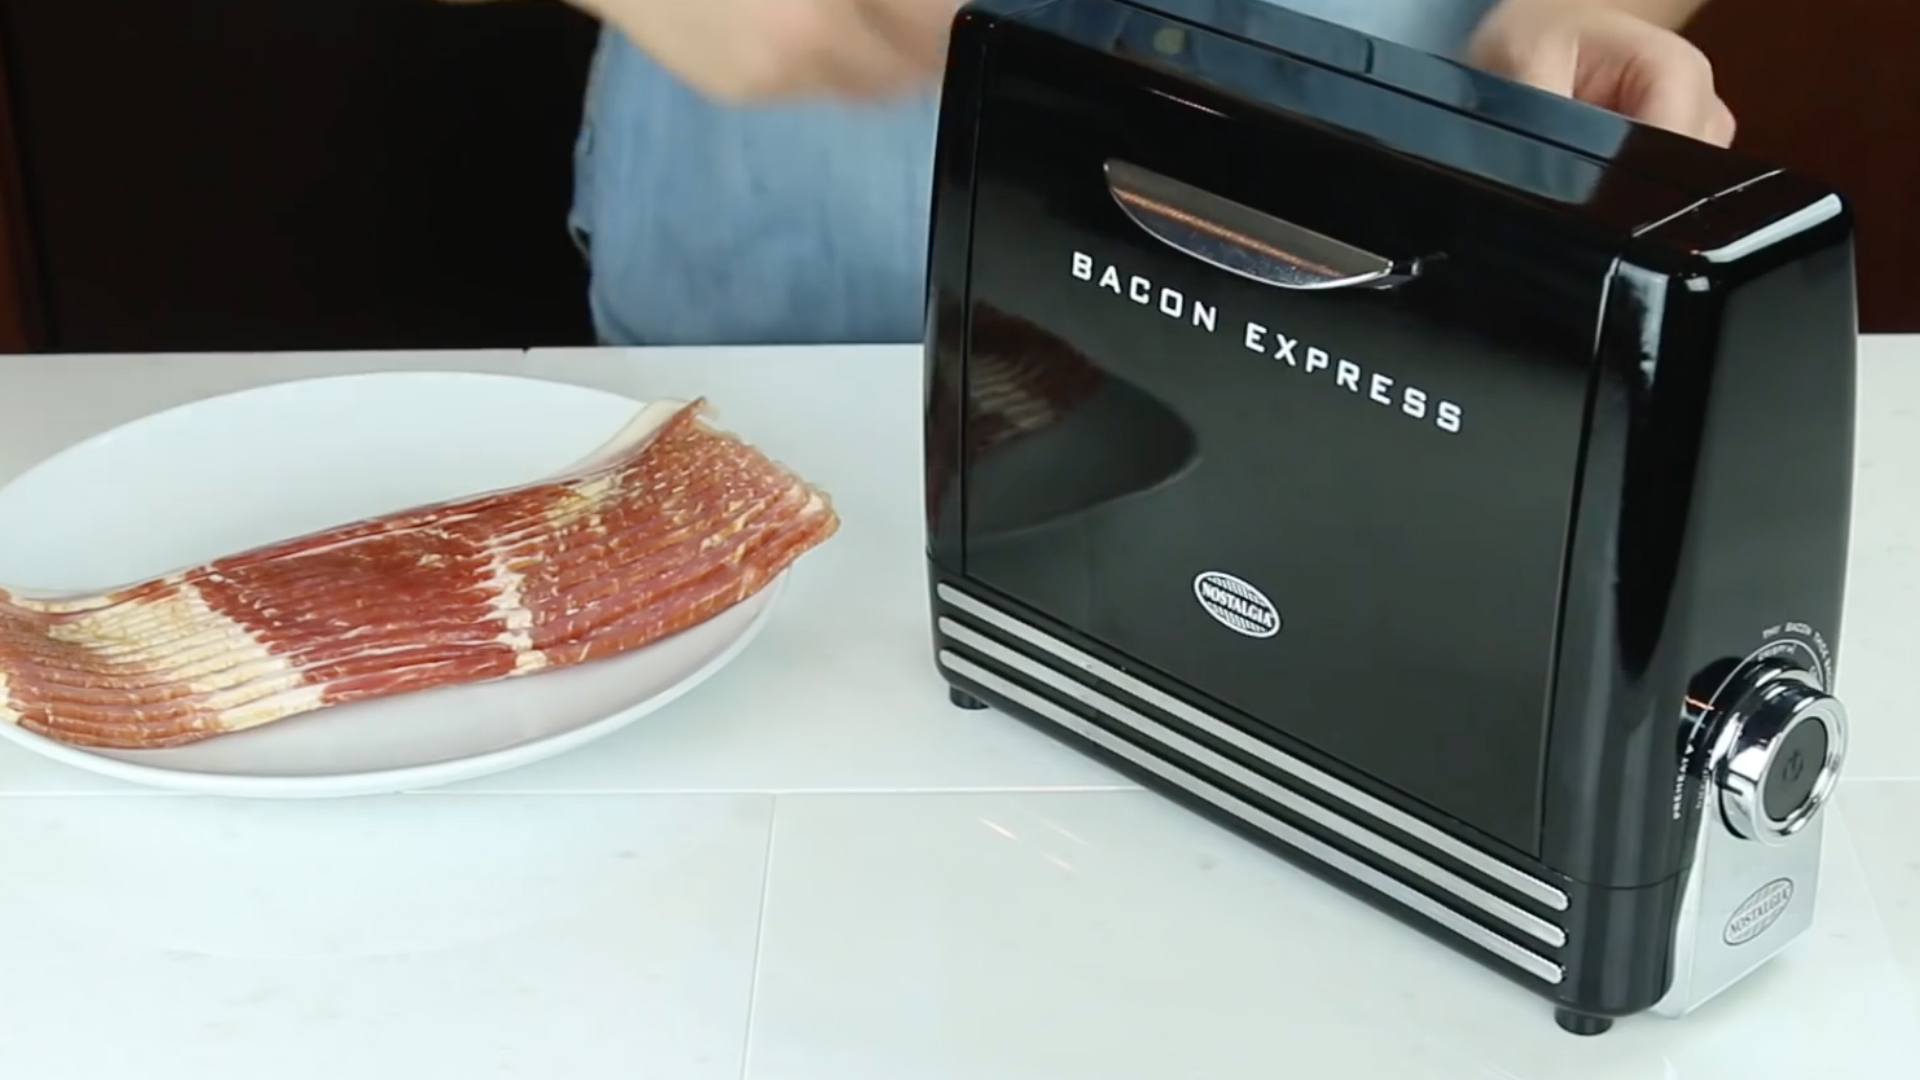 The bacon toaster